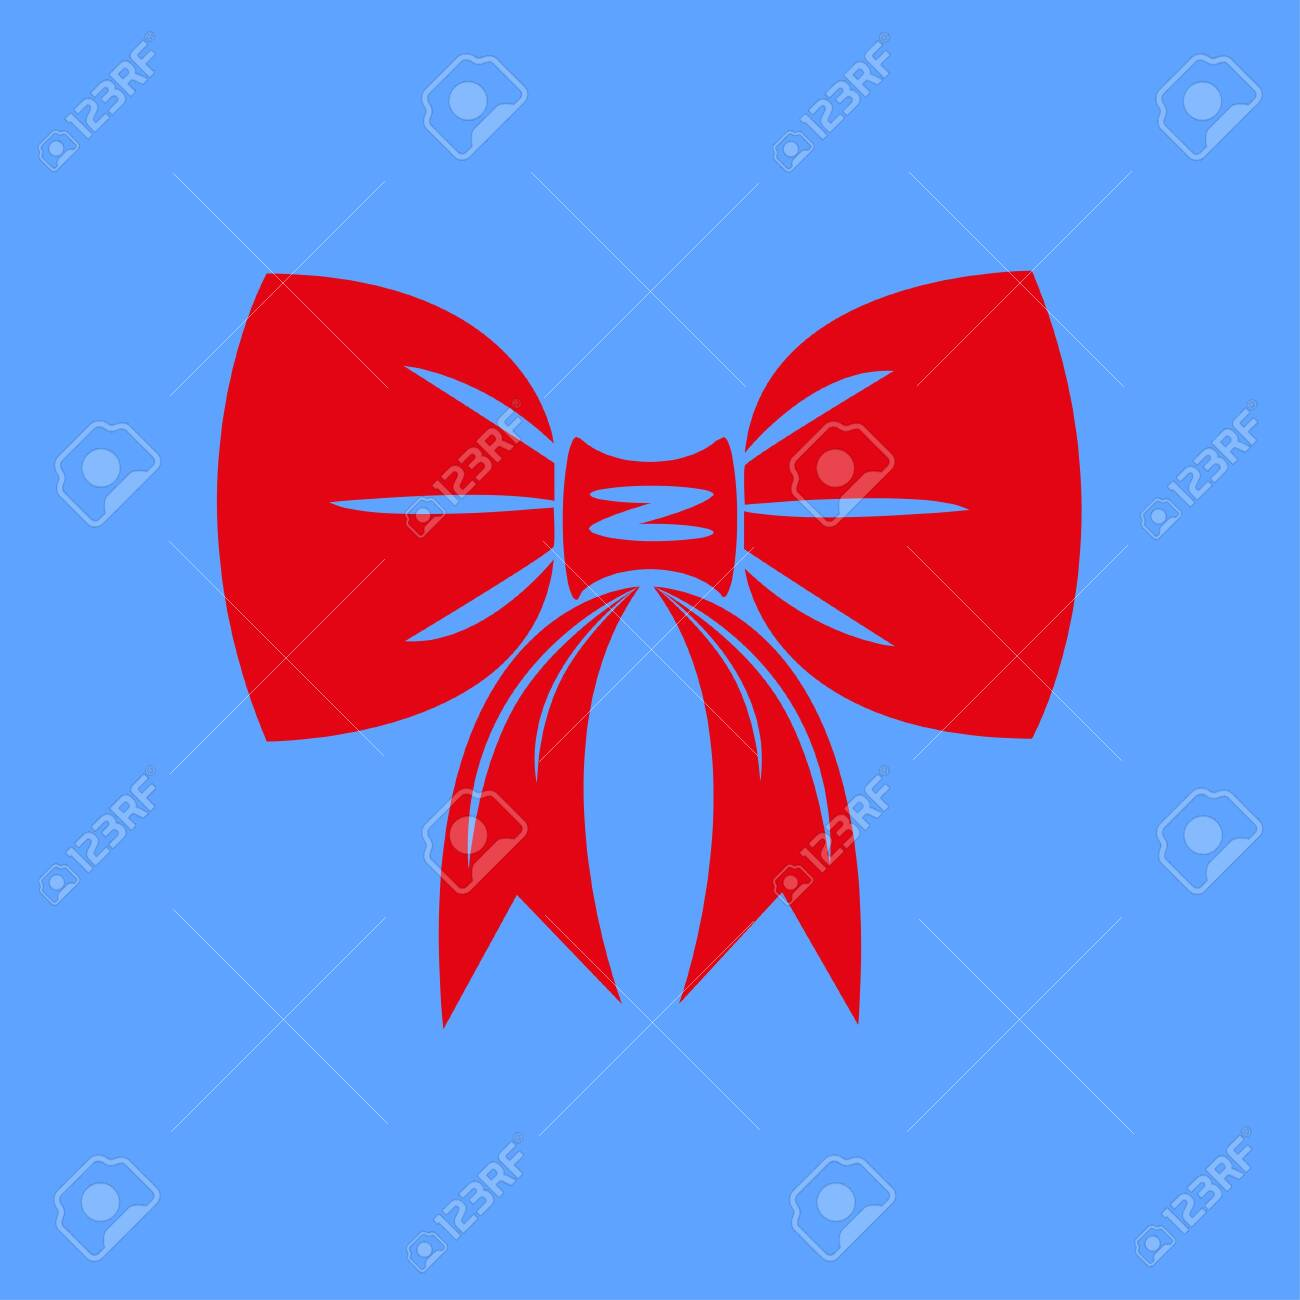 Icon of red bow isolated on blue background. Red bow is suitable for decorating cards for the holidays. Vector illustration EPS 10. - 146542576